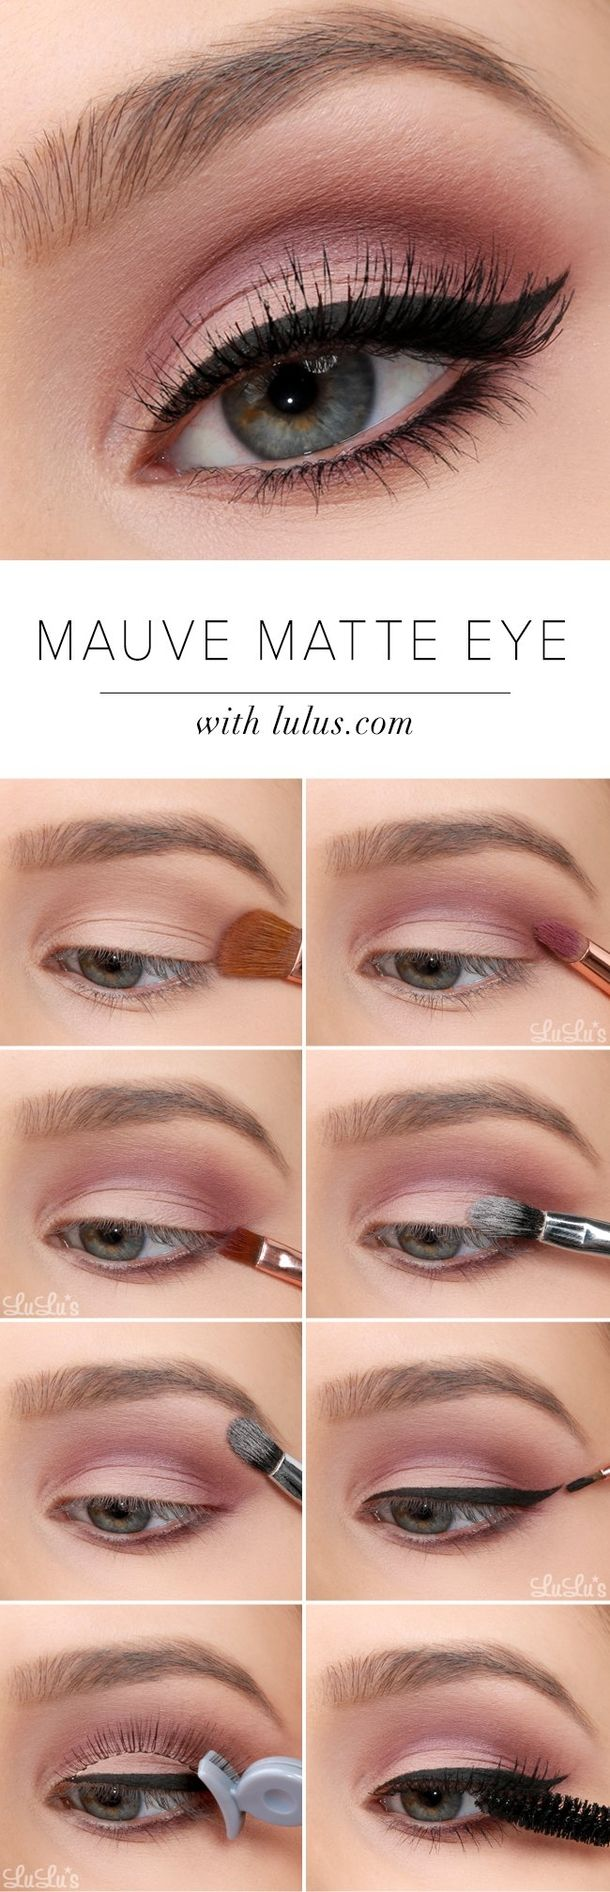 10 Step By Step Makeup Tutorials To Make You Look Like A Pro